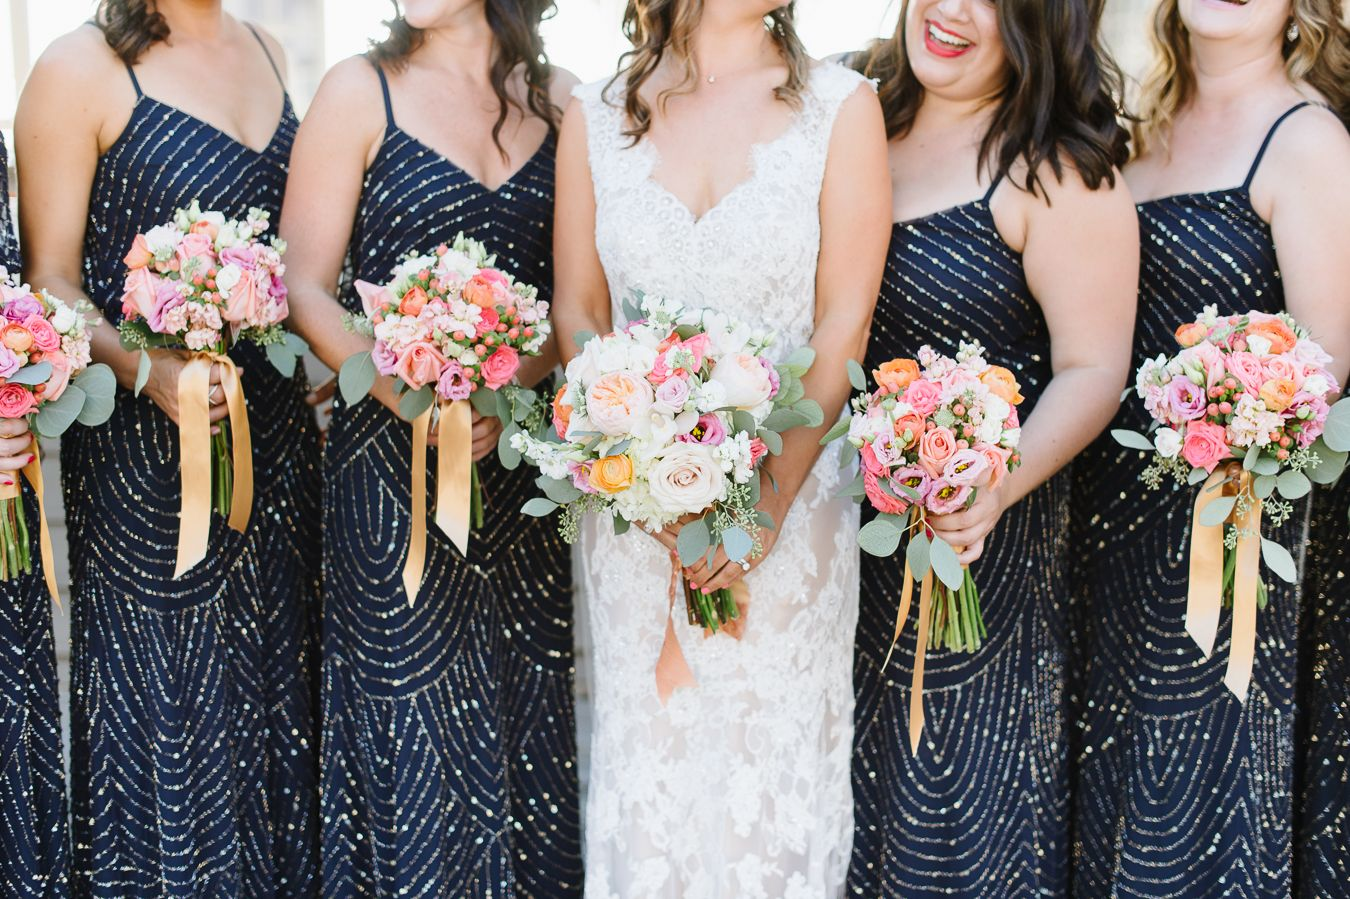 Adrianna Papell Bridesmaids Dress With Sequins And Beading